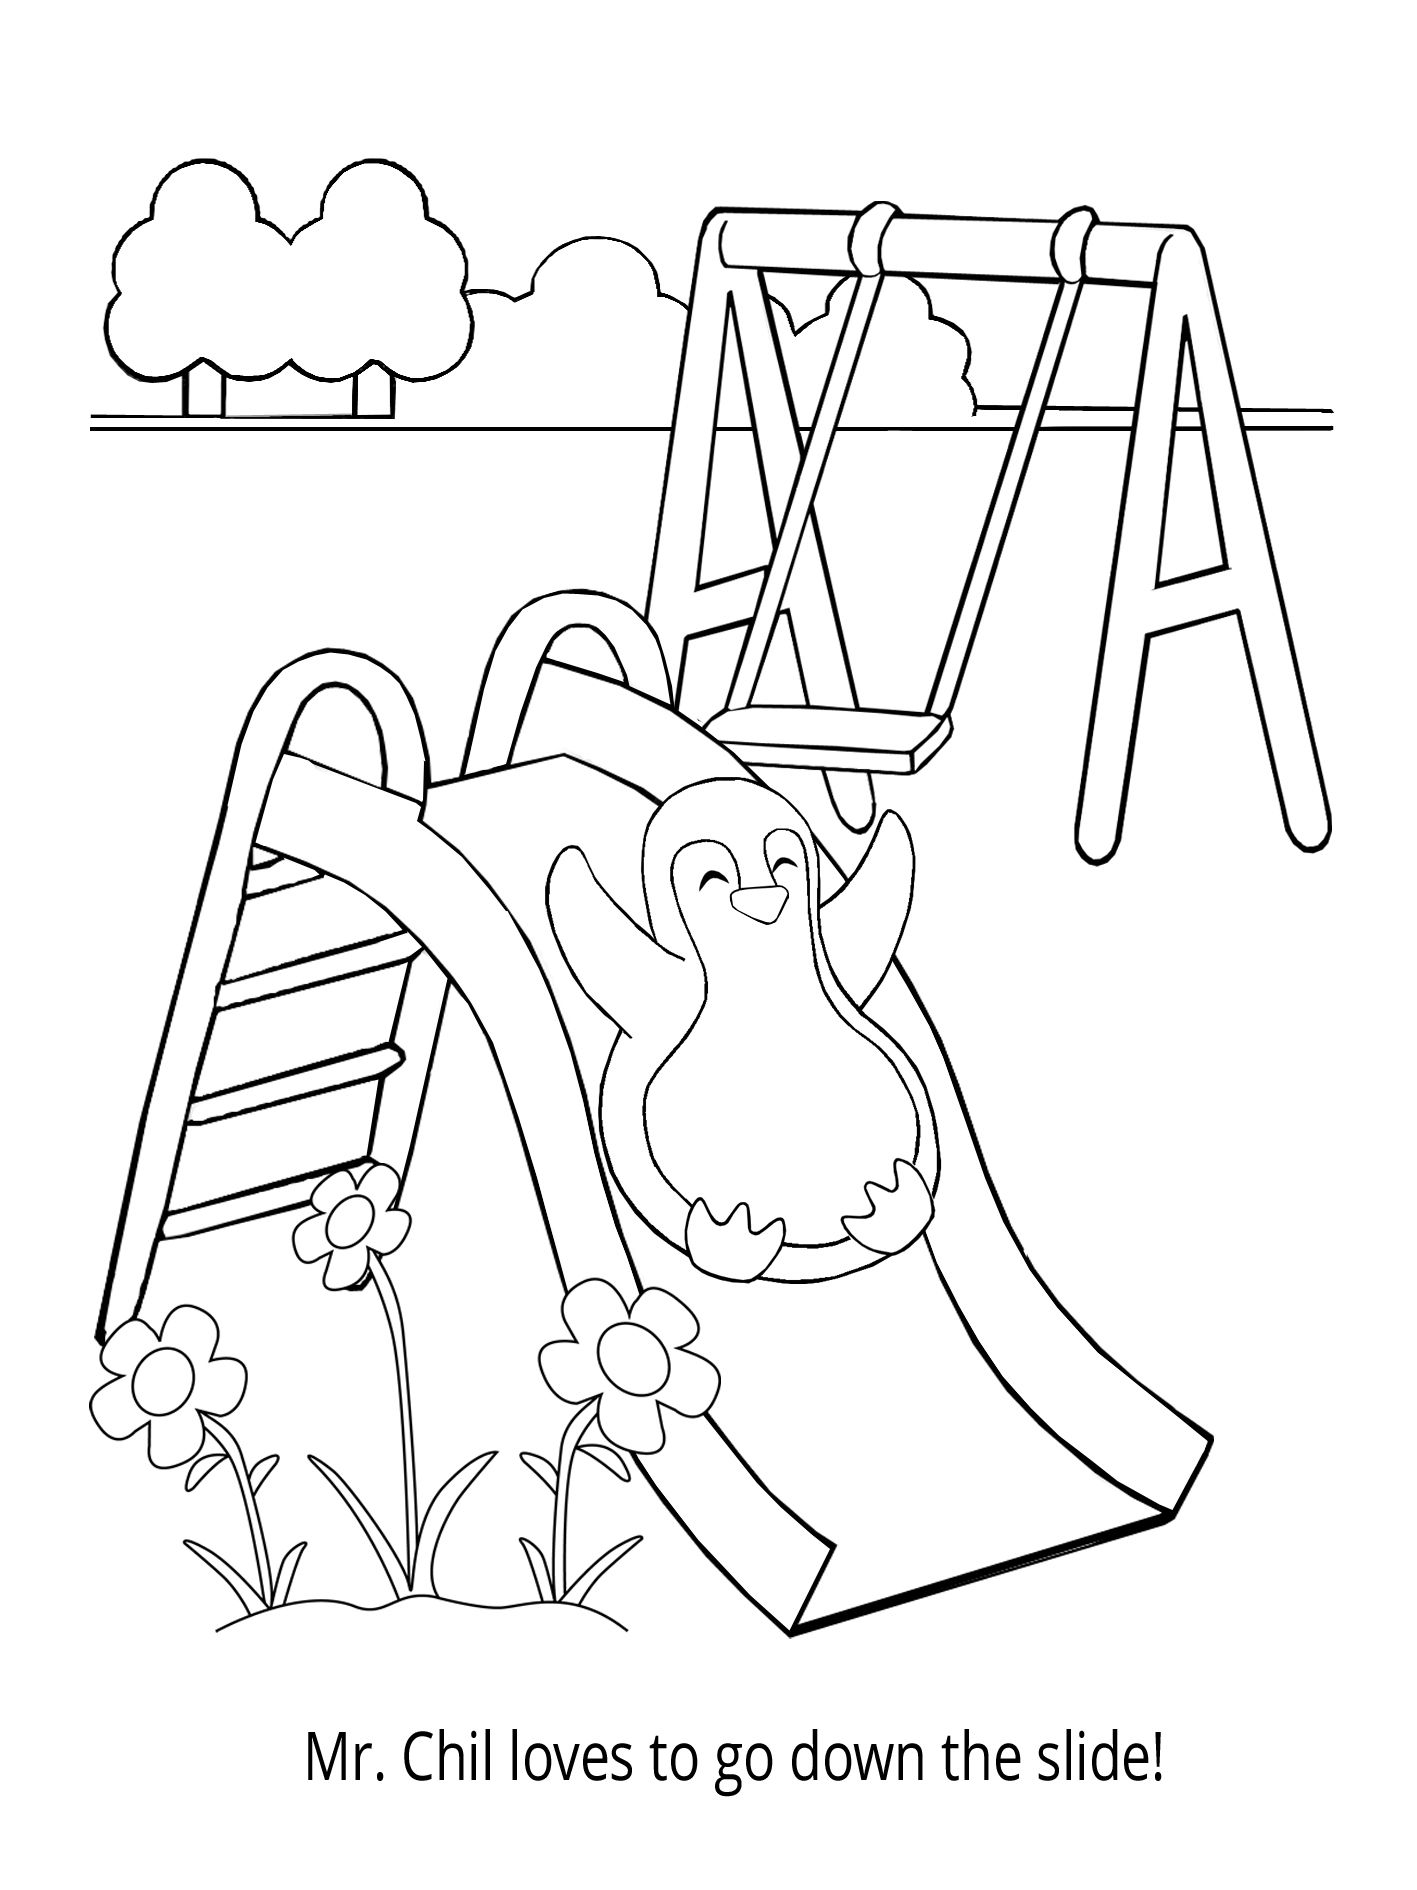 Penguin Coloring Book Come And Play With Mr Chil On His Favorite Playground Ride Fun Activities For Kids Penguin Coloring Children S Literature [ 1890 x 1417 Pixel ]